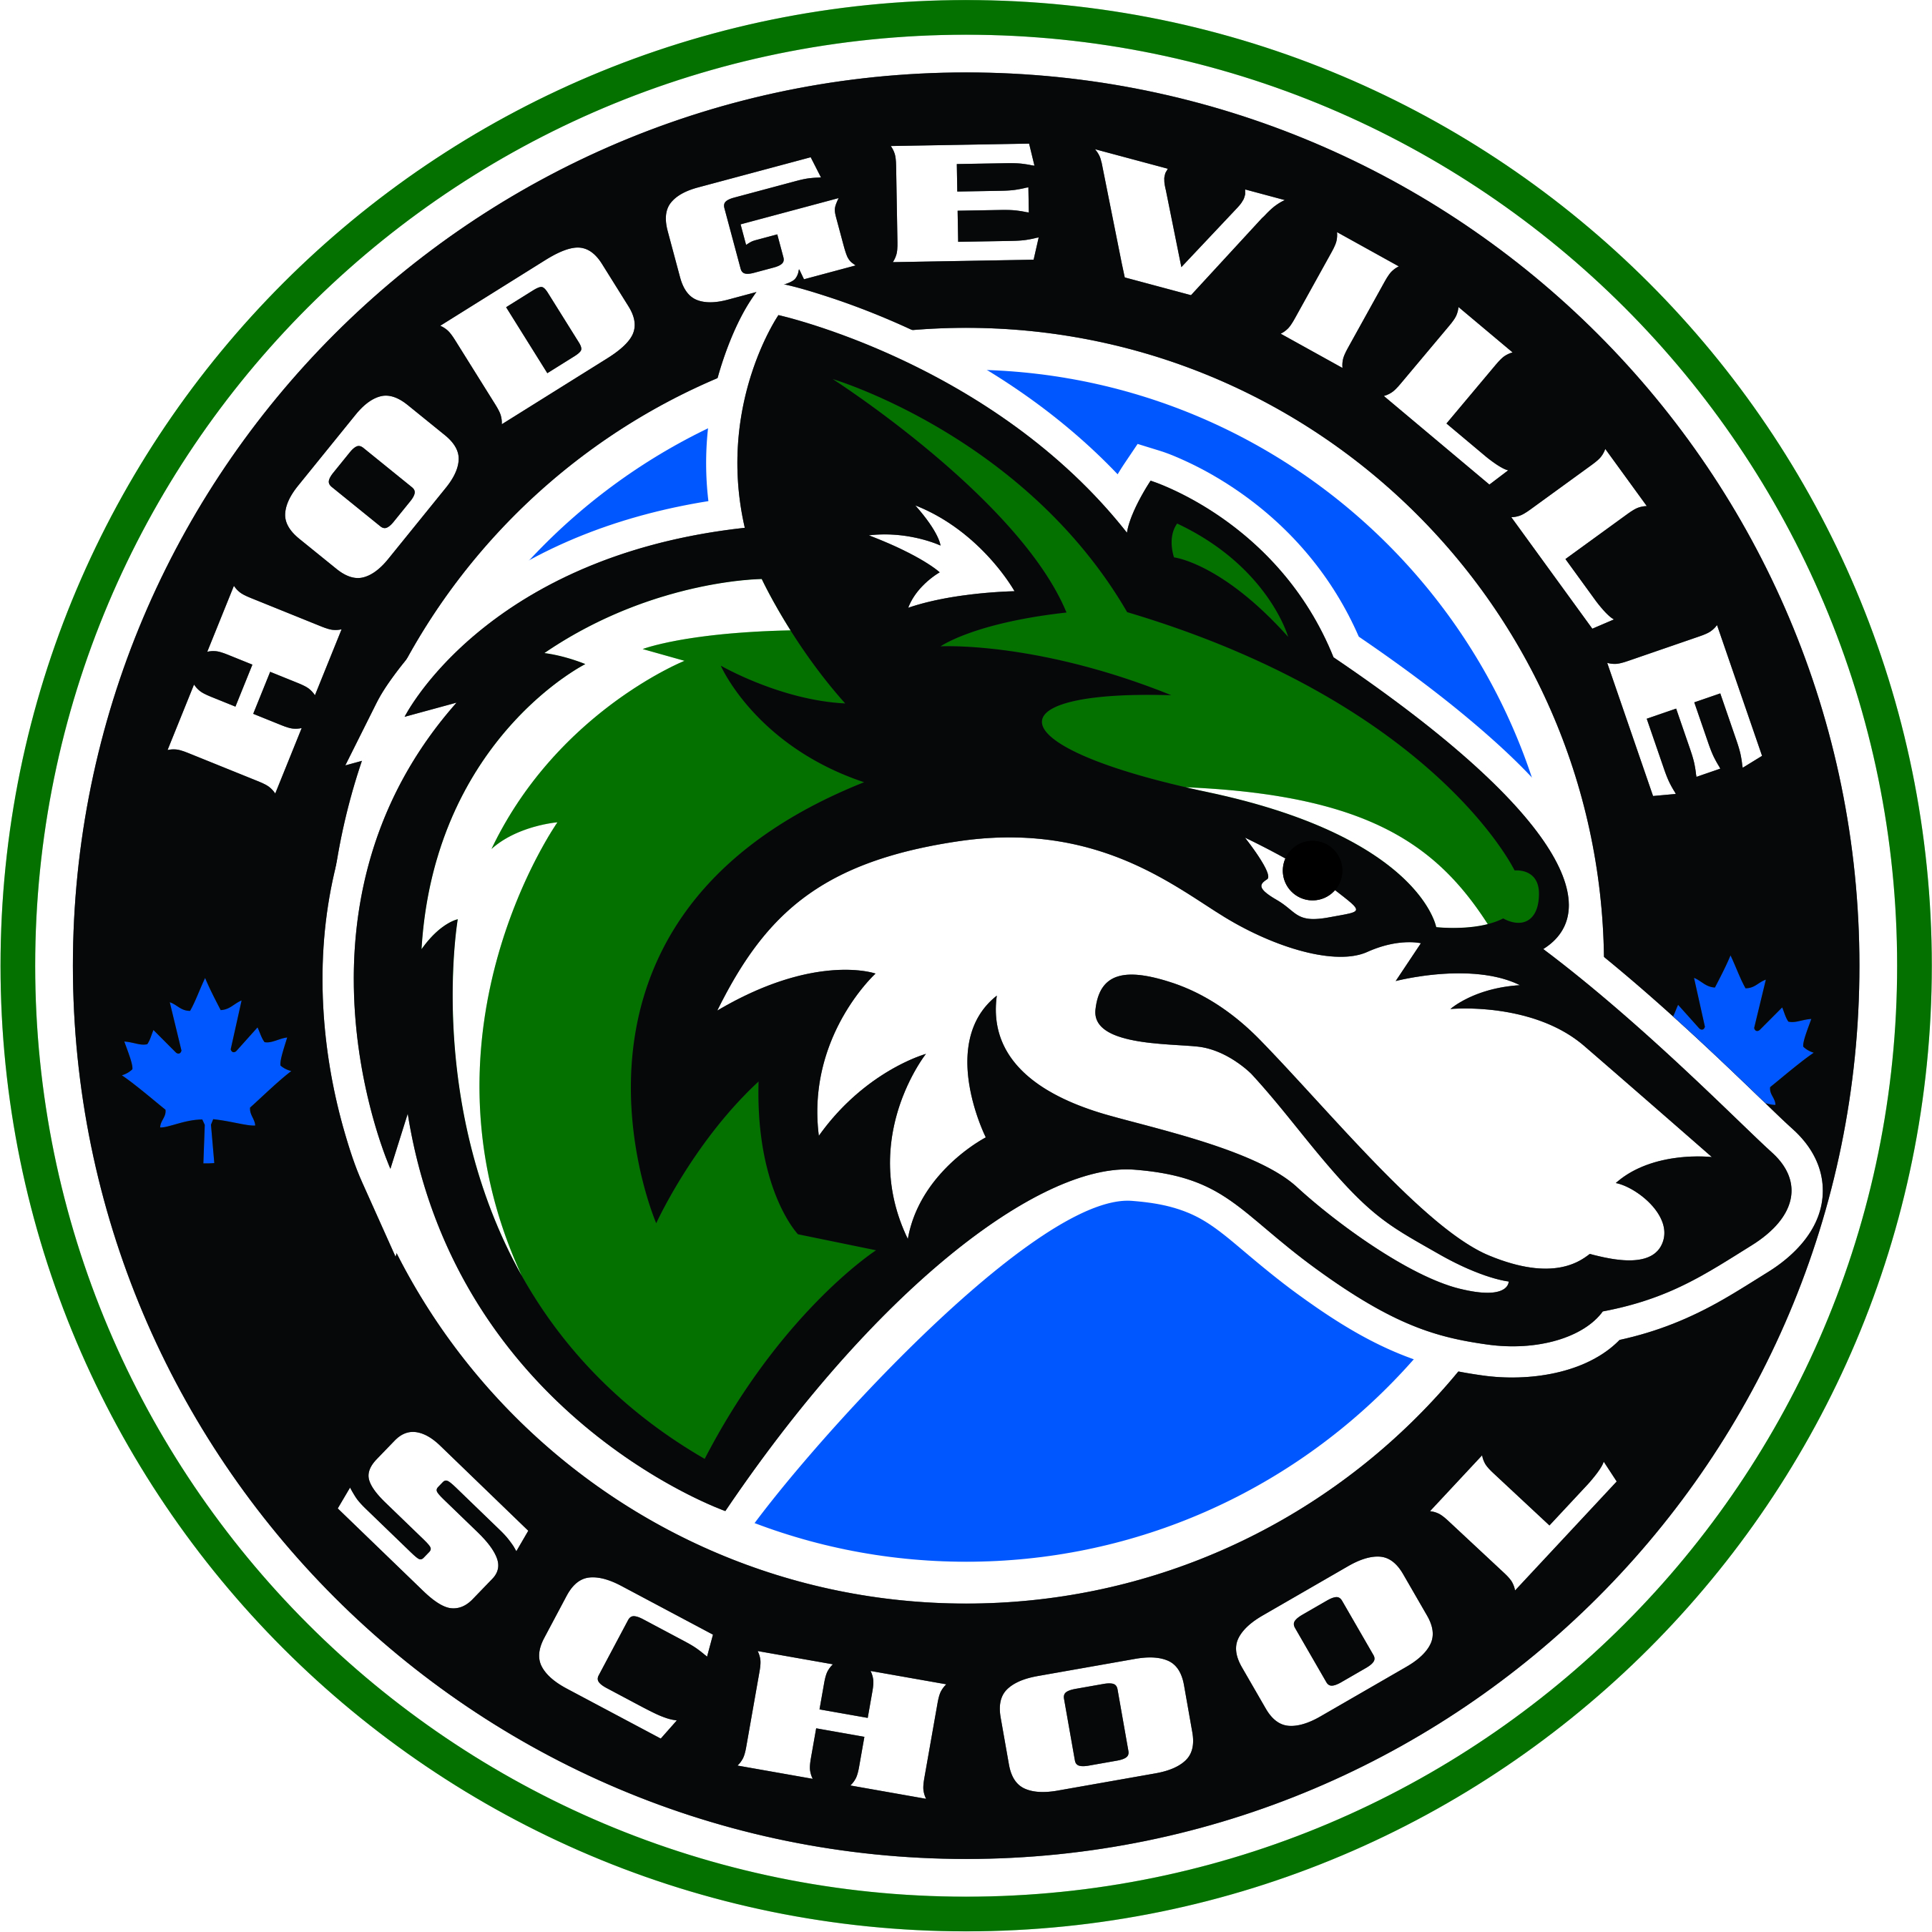 Welcome to Hodgeville School!